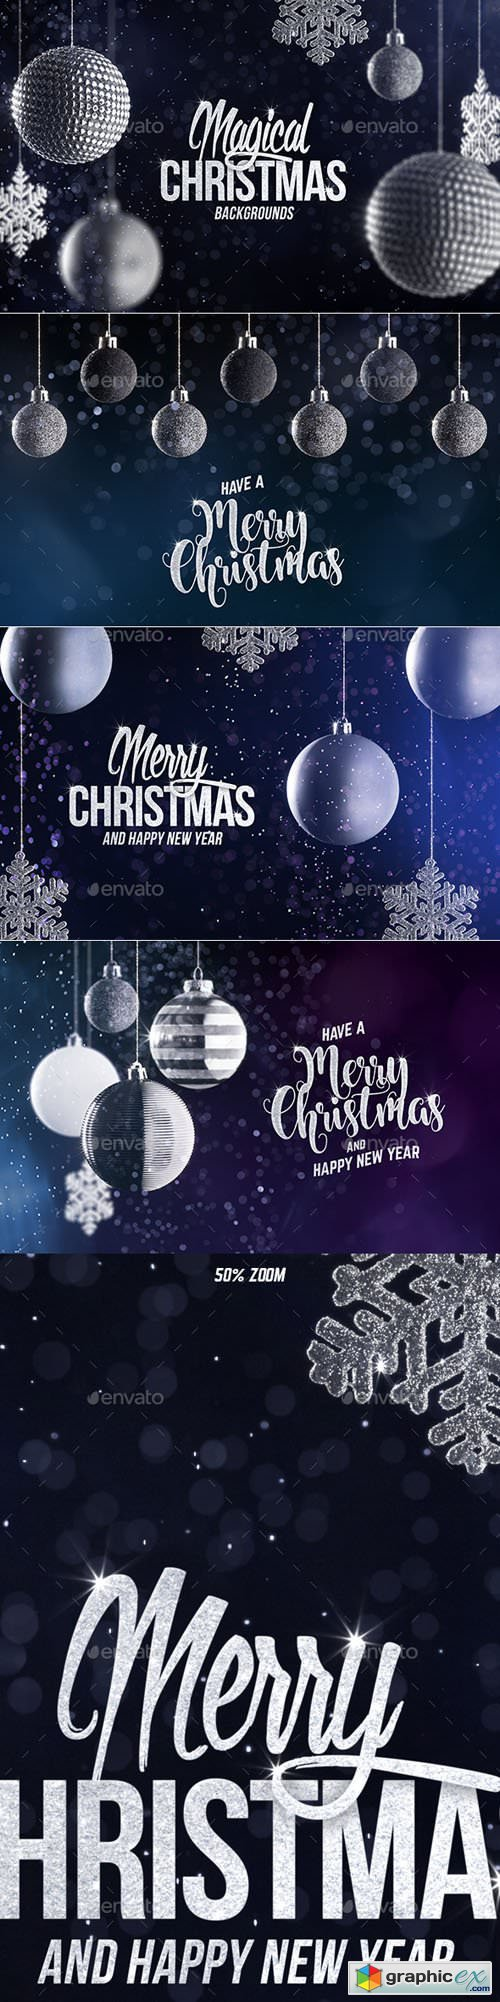 4 Christmas Backgrounds with Editable Text